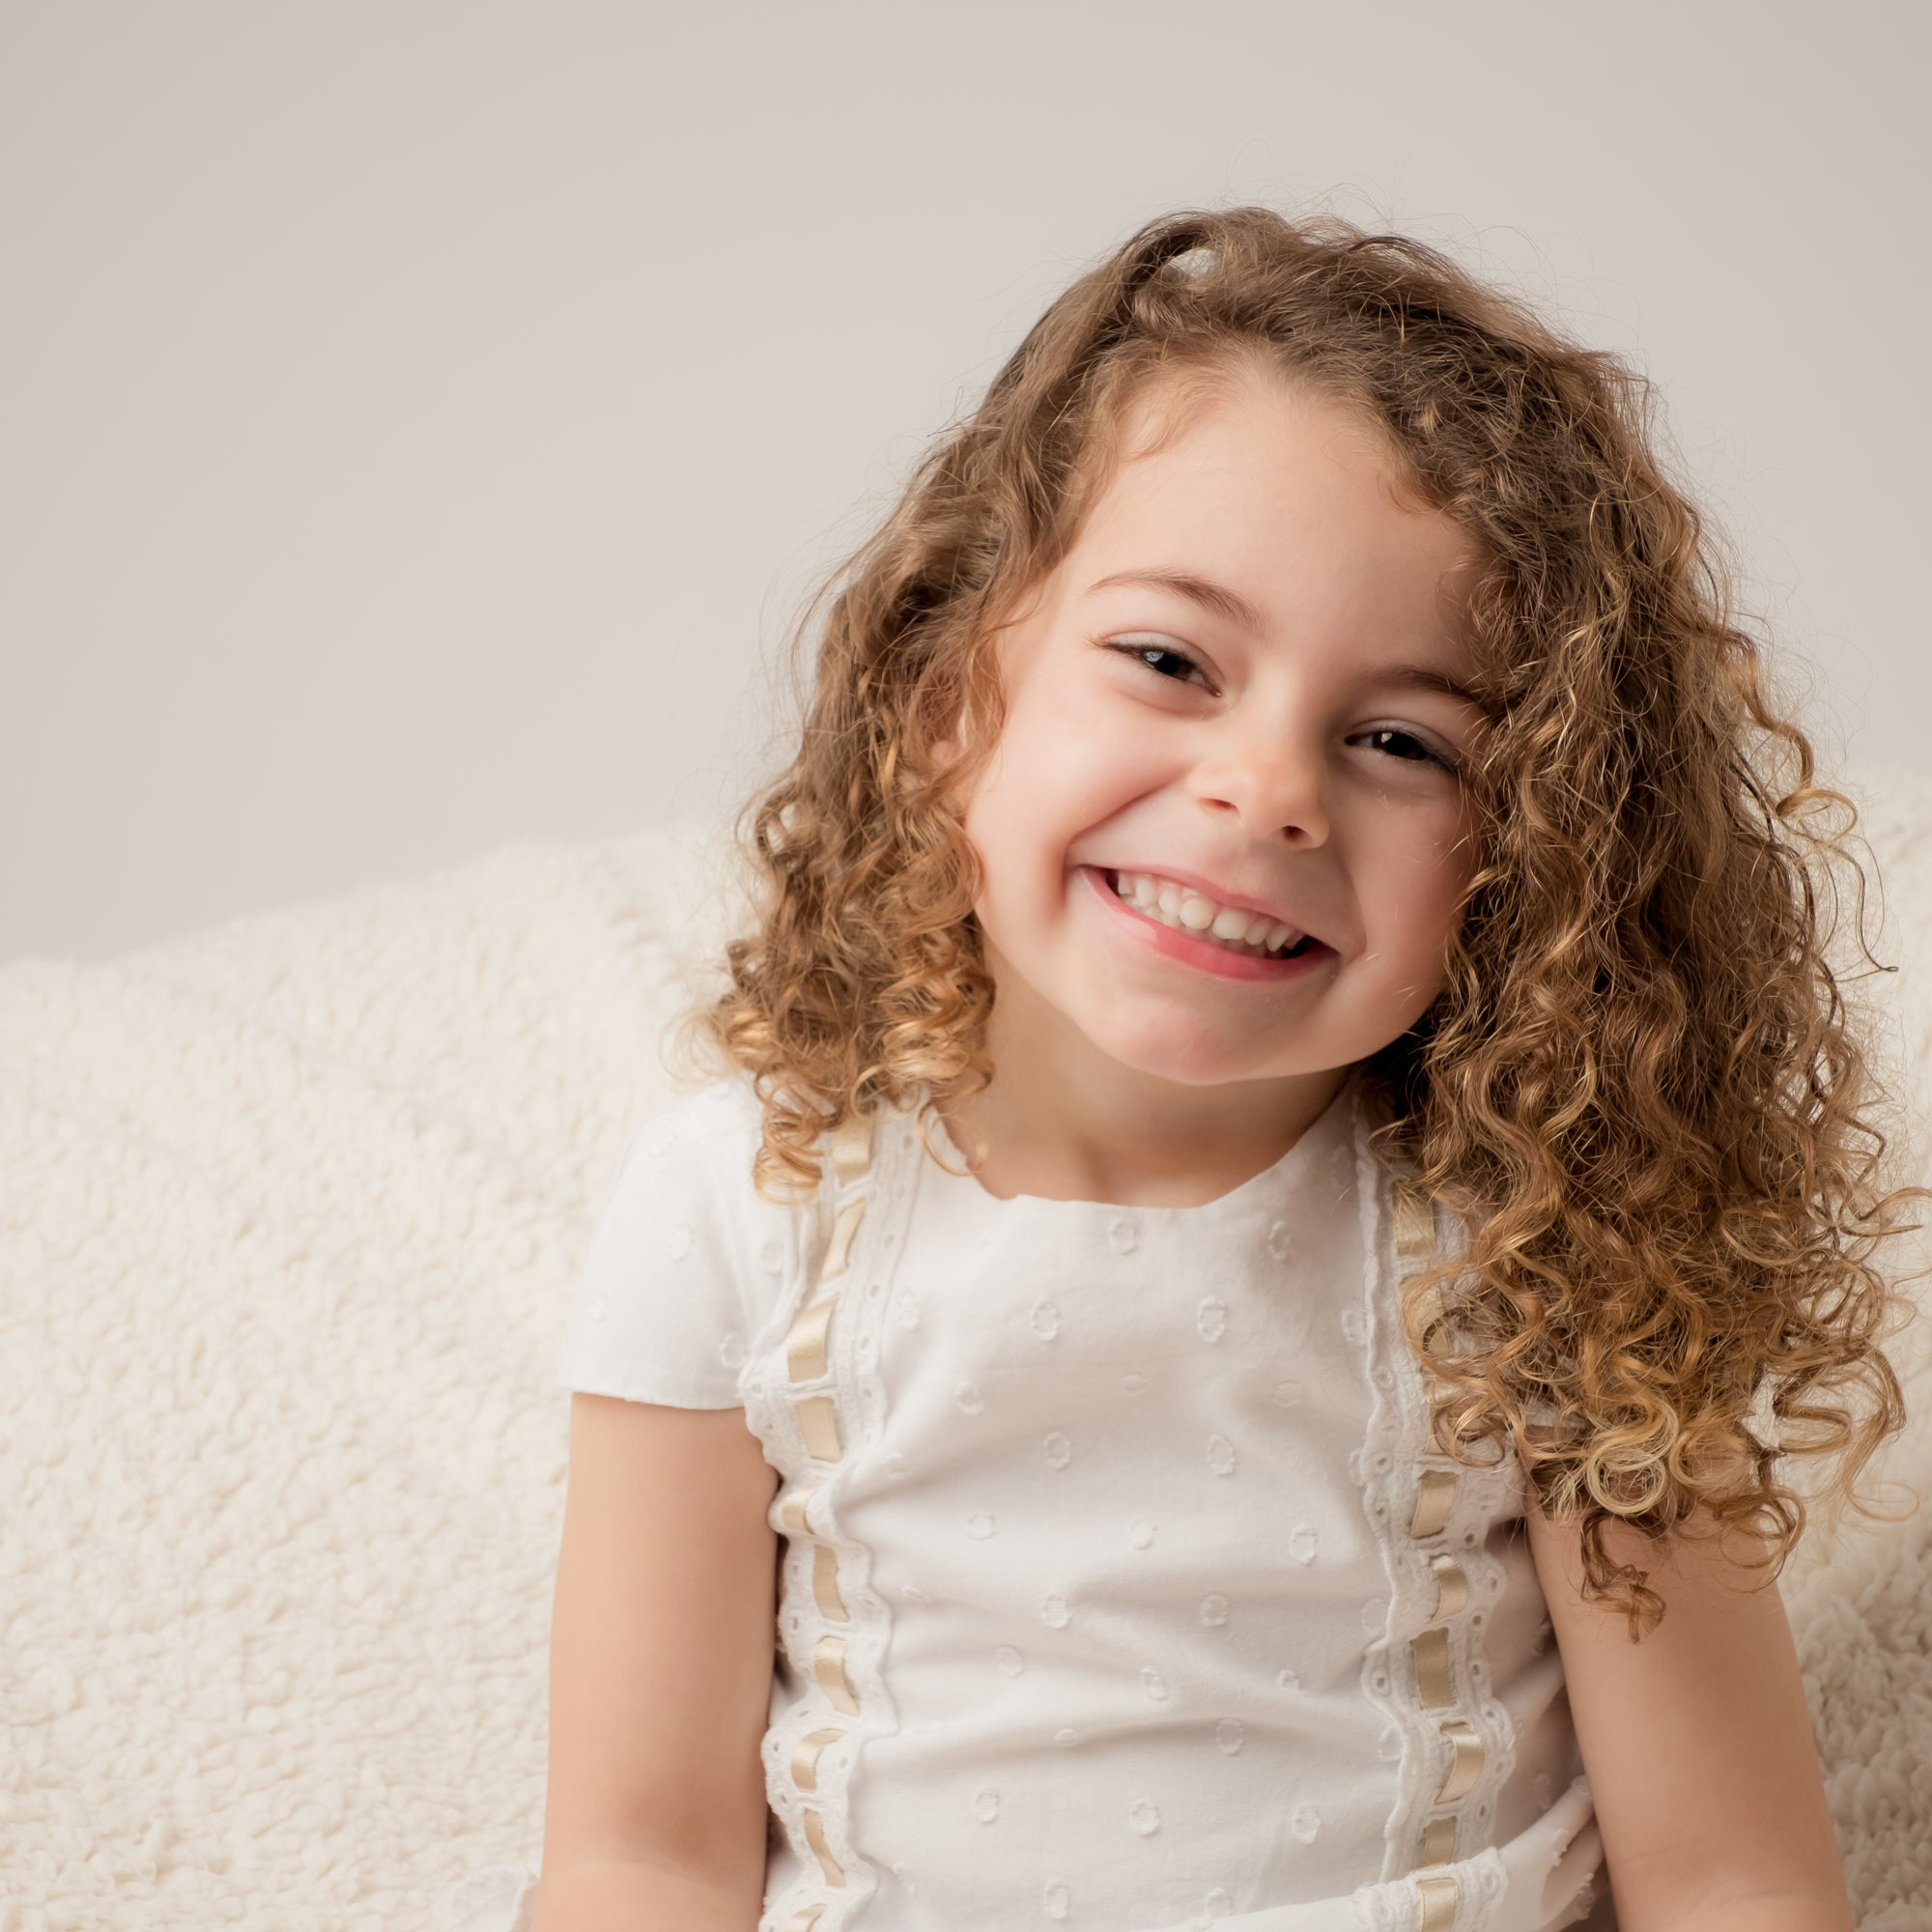 Young_girl_with_long_brown_curly_hair_wearing_a_white_dress_has_a_big_grin_on_her_face.jpg